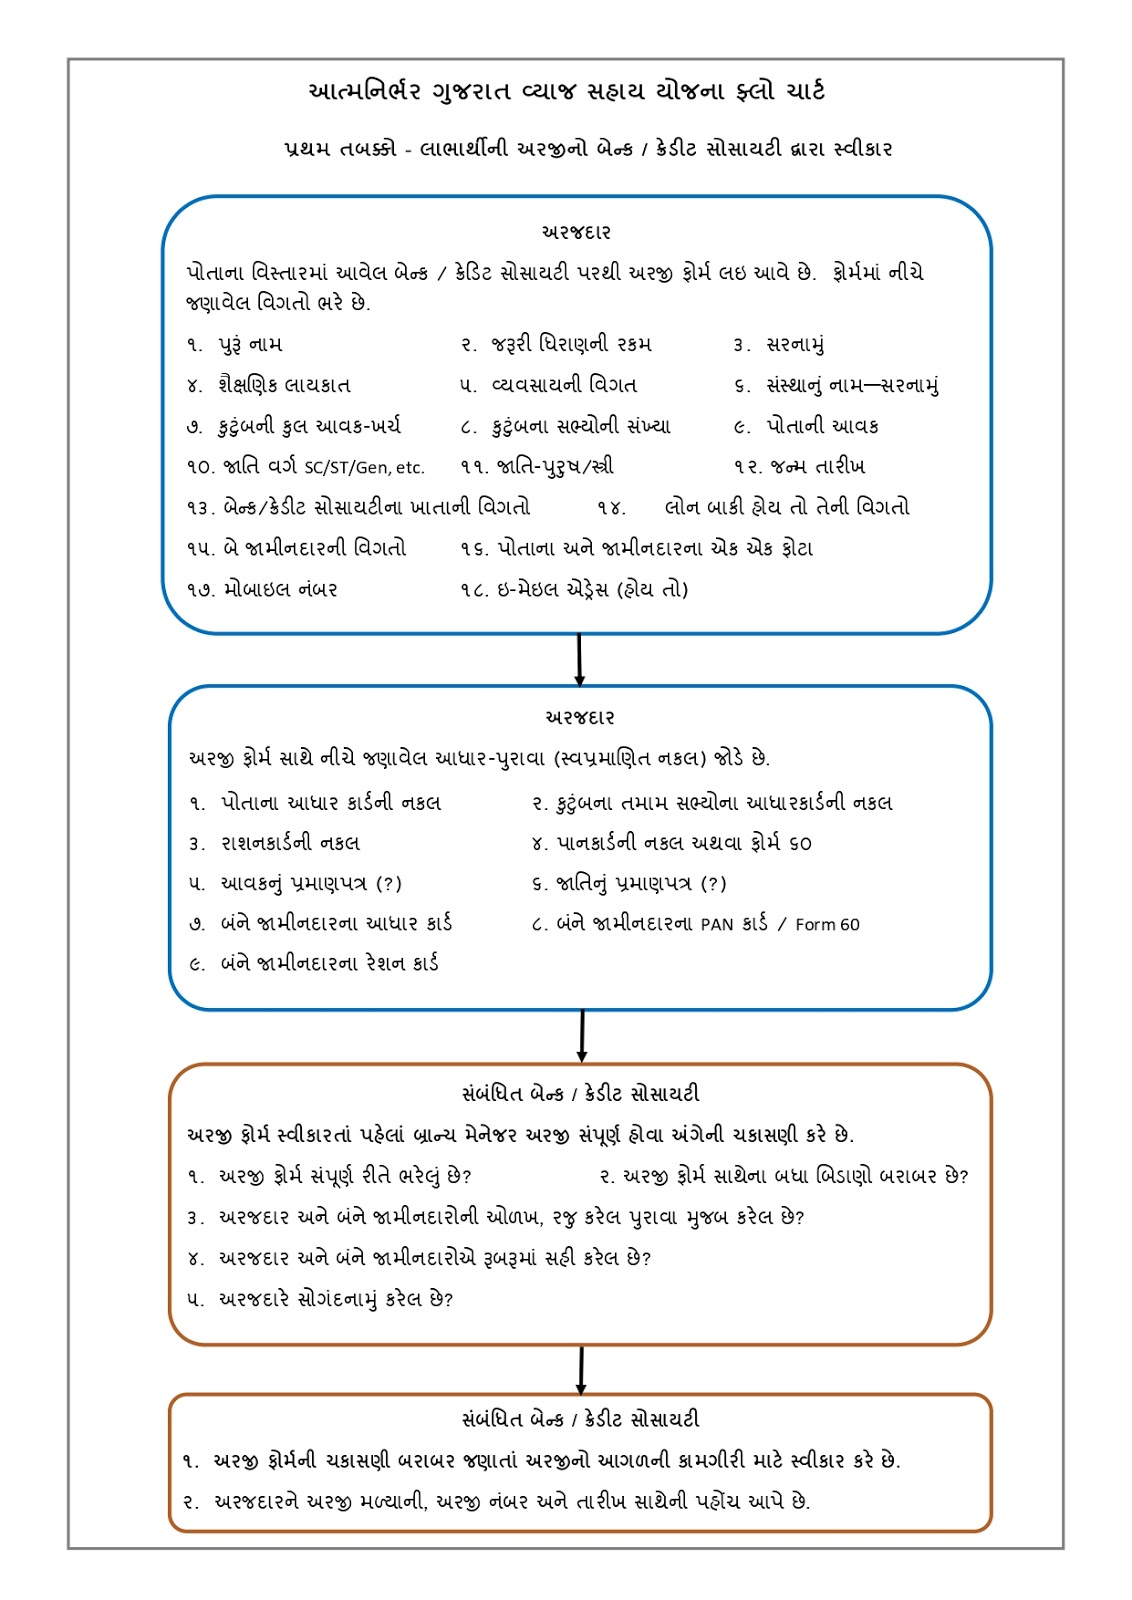 Atmanirbhar Gujarat Sahay Yojana Online / Offline Application Form